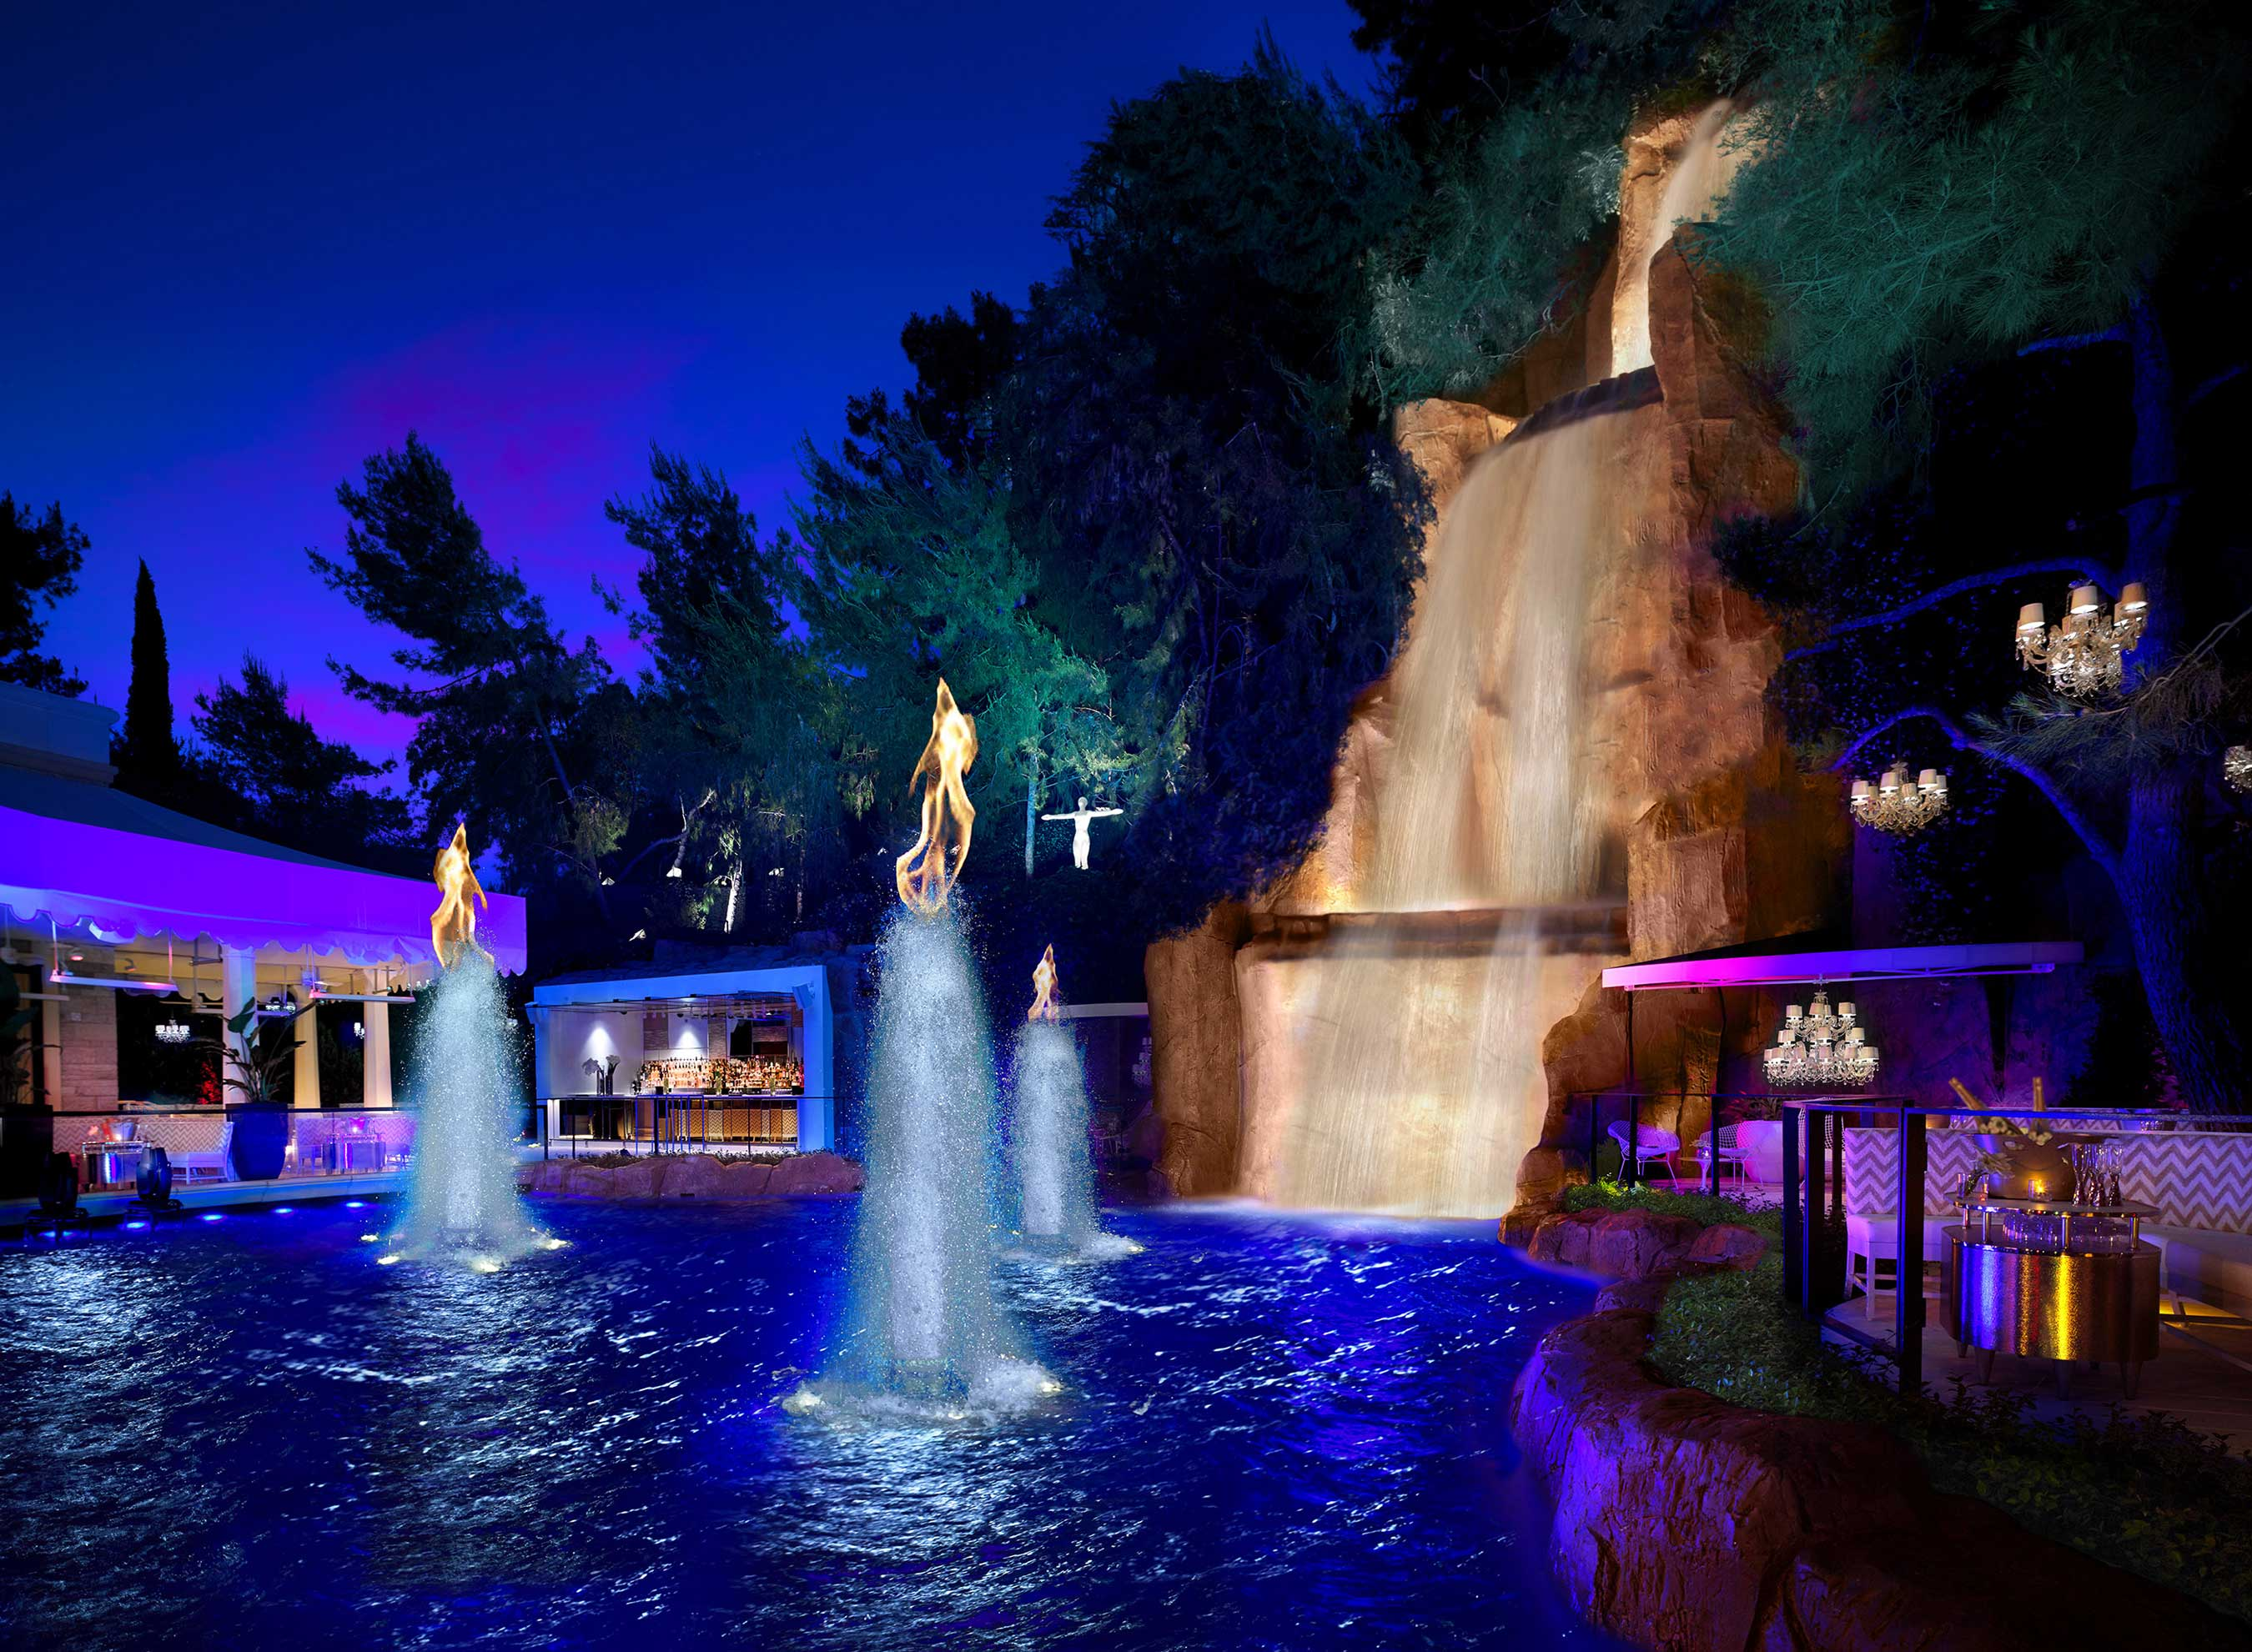 94-foot waterfall, fountain and pyrotechnics show at Intrigue Nightclub in Wynn Las Vegas (photo credit: Barbara Kraft)